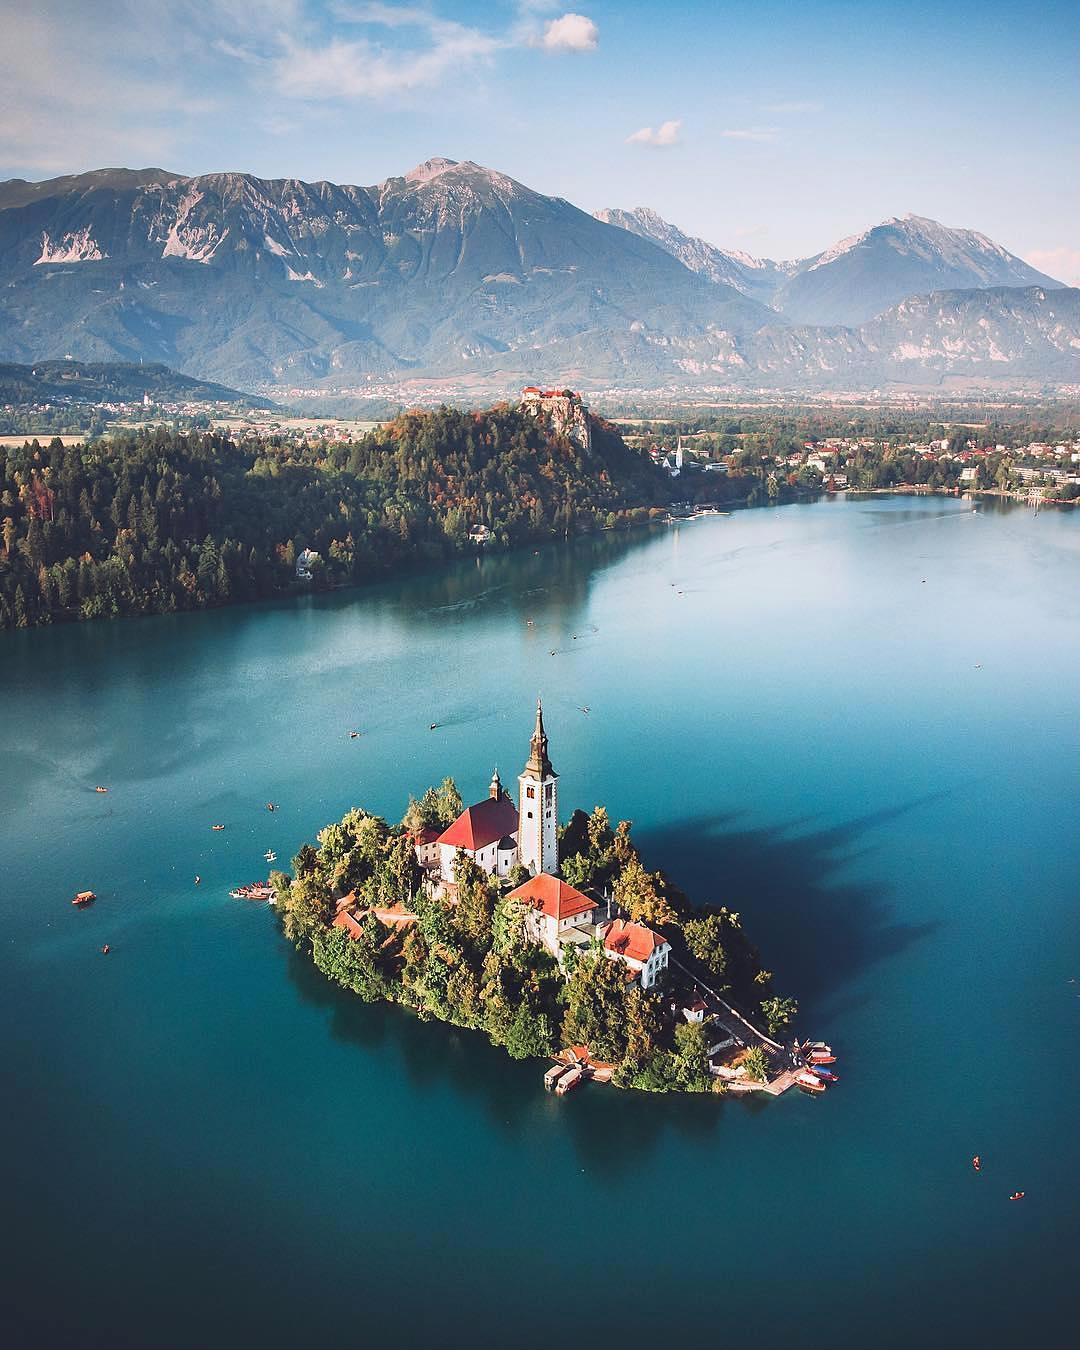 THE SYMBOL OF SLOVENIA'S  BEAUTY. This beautiful Alpine lake with the only island in Slovenia has been a world - known paradise.  Impressing visitors with its natural charm, wealth of legend, and special powers to restore well-being.  Relax your mind, calm your spirit and renew your travel experiences at this beautiful spot. Thanks @maxlazzi for sharing your photo with #ifeelsLOVEnia.